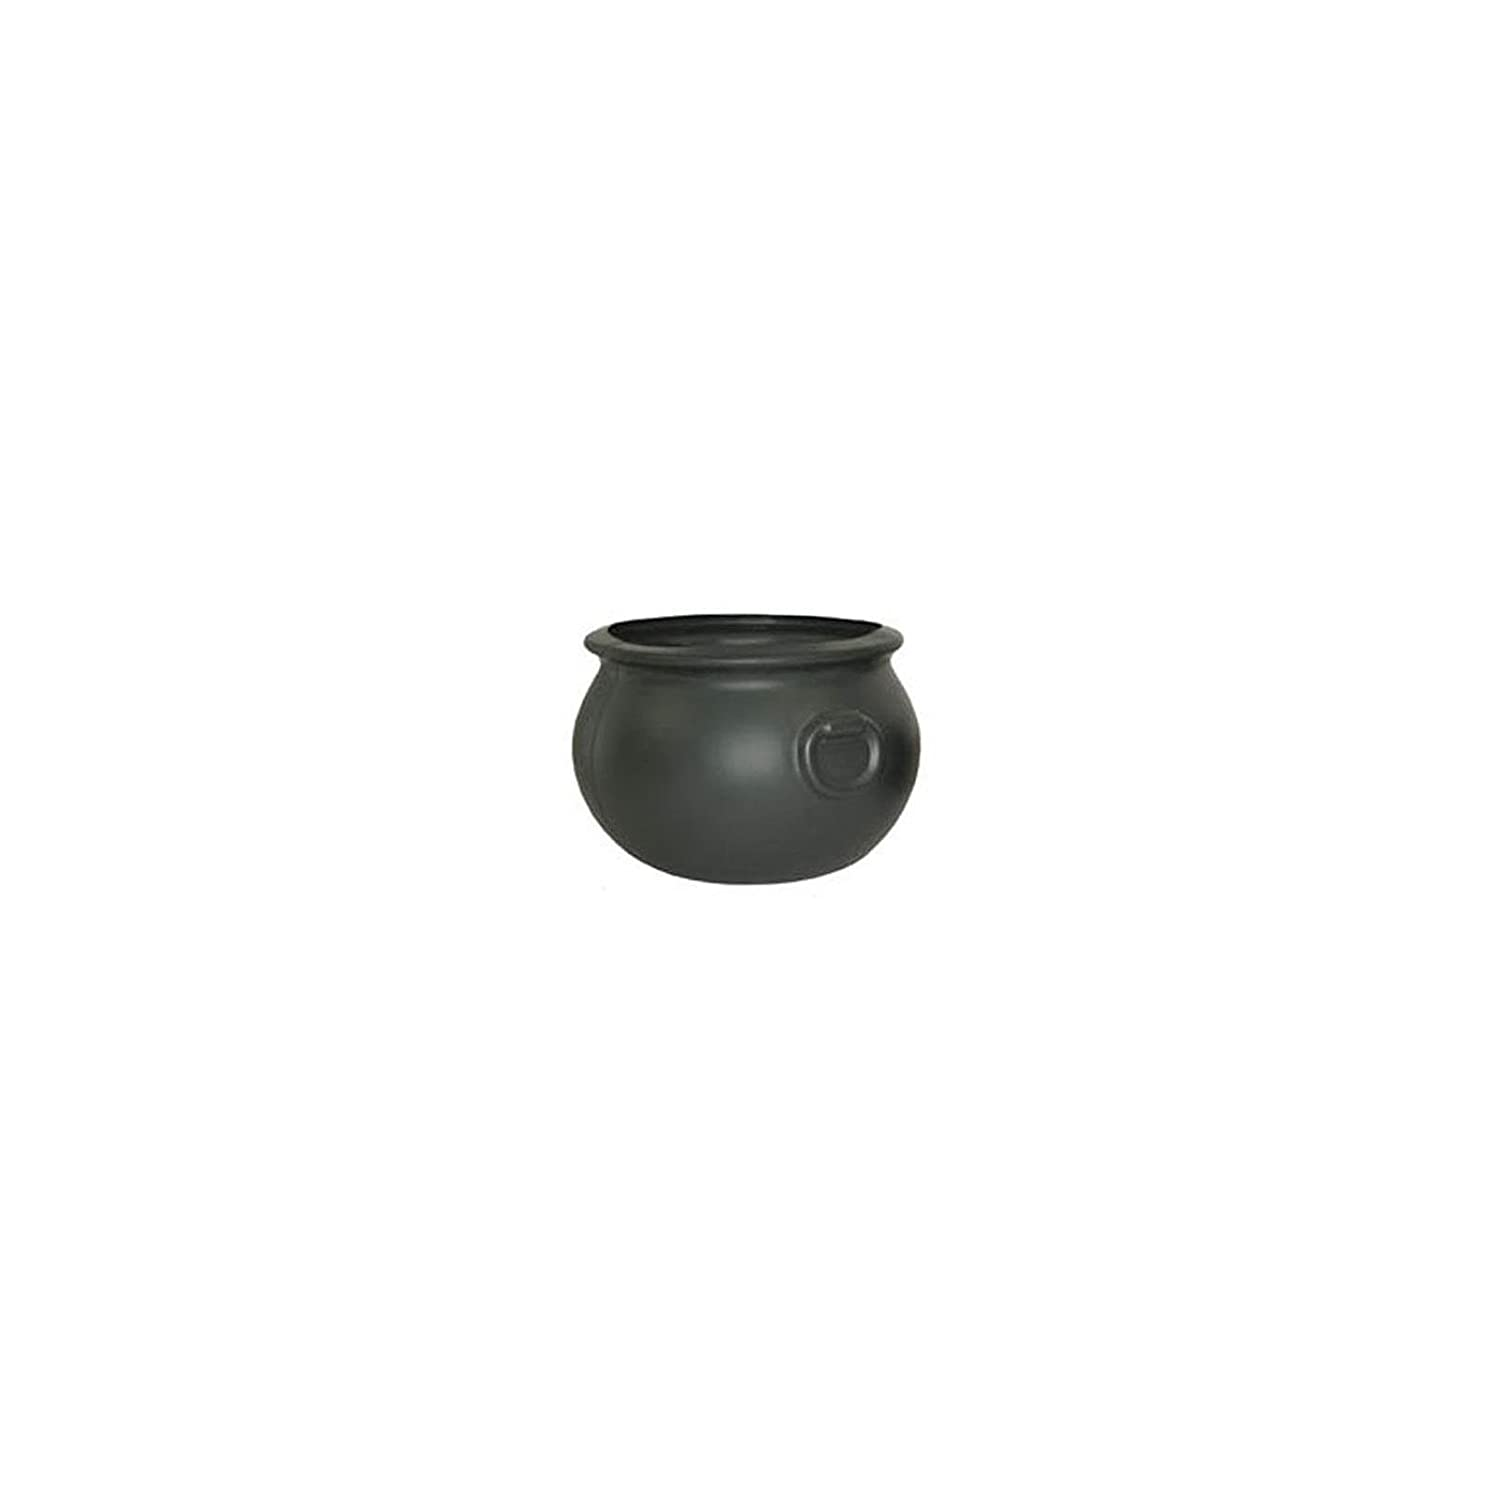 General Foam Plastics TS-H1075 Witches Cauldron Figurine, 16-Inch GENERAL FOAM PLASTICS CORP.